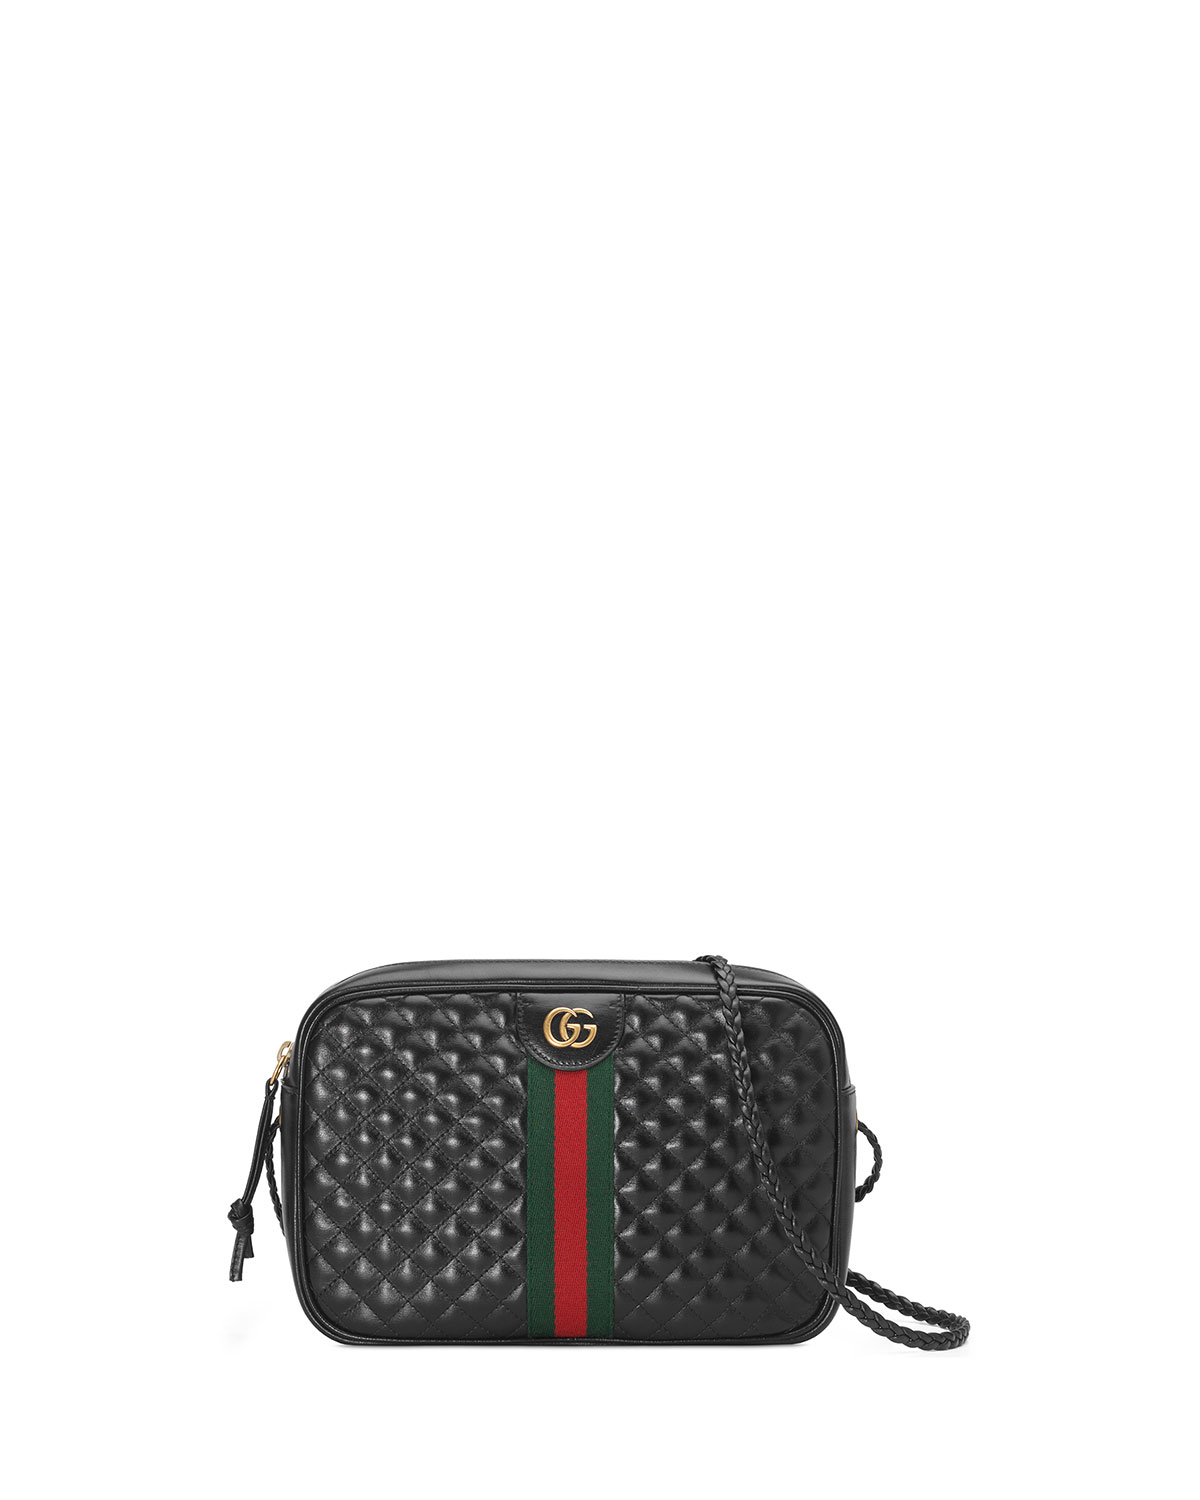 performance sportswear offer discounts how to buy Gucci Trapuntata Small Quilted Leather Crossbody Camera Bag